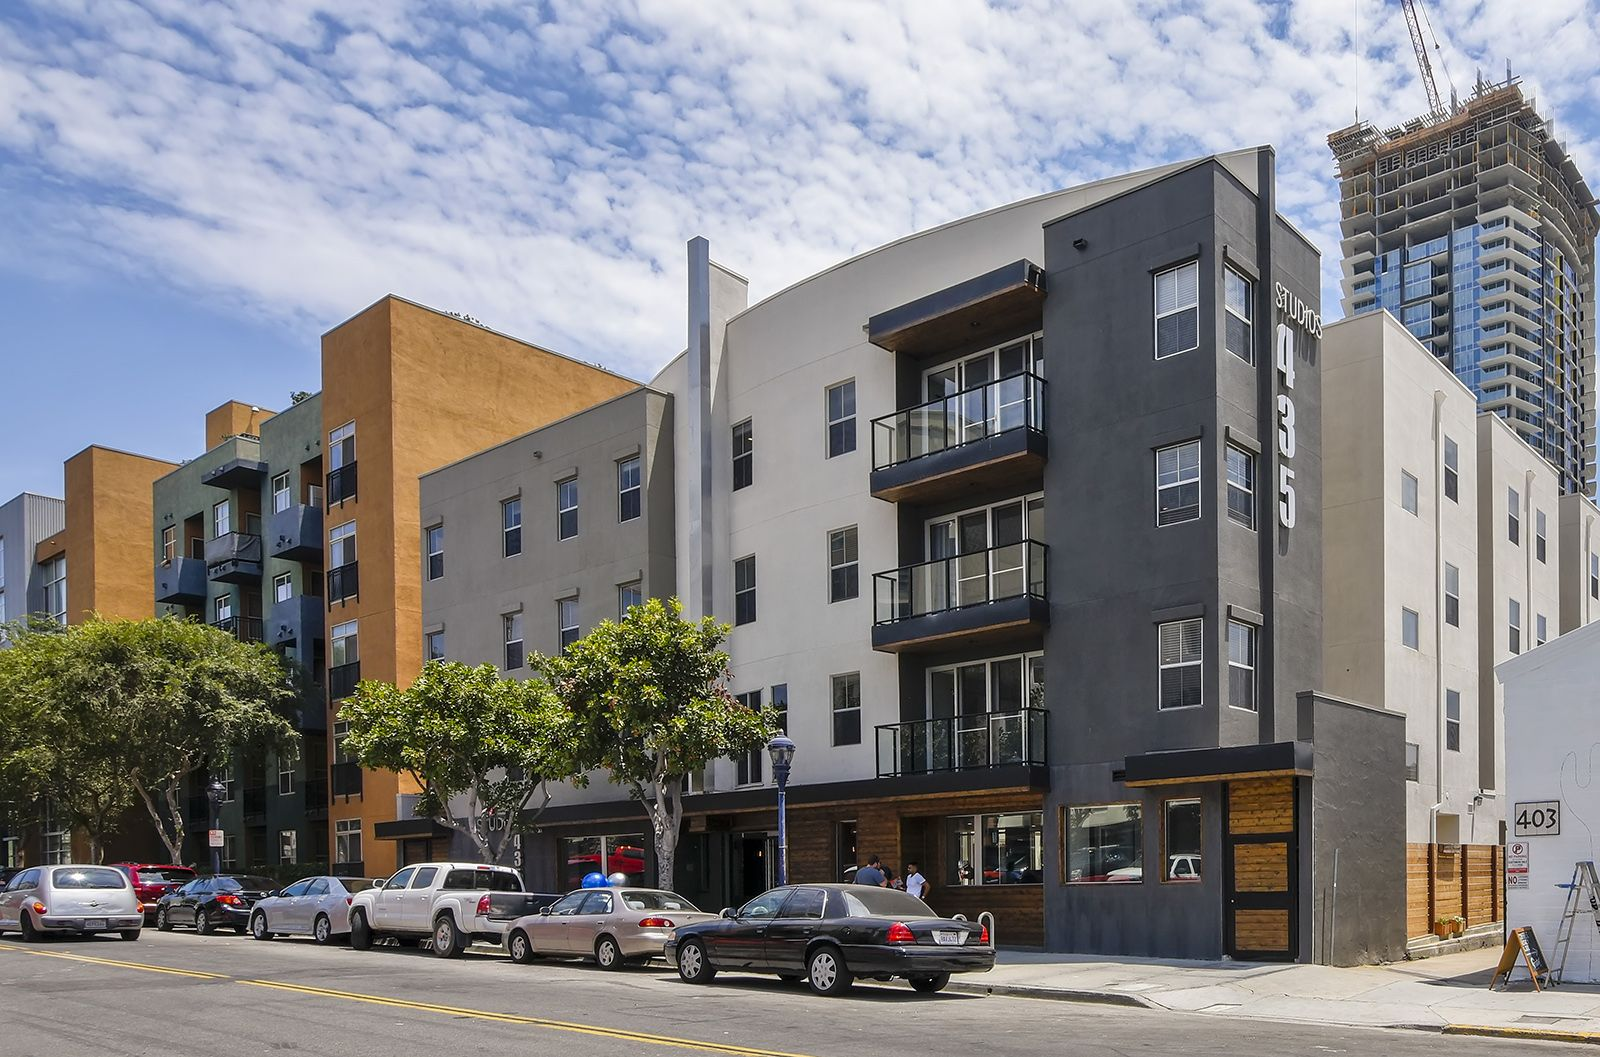 We Re Open The Studios Is A Luxury Micro Apartment Community In The Heart Of The Exhilara San Diego Apartments Apartment Communities Micro Apartment